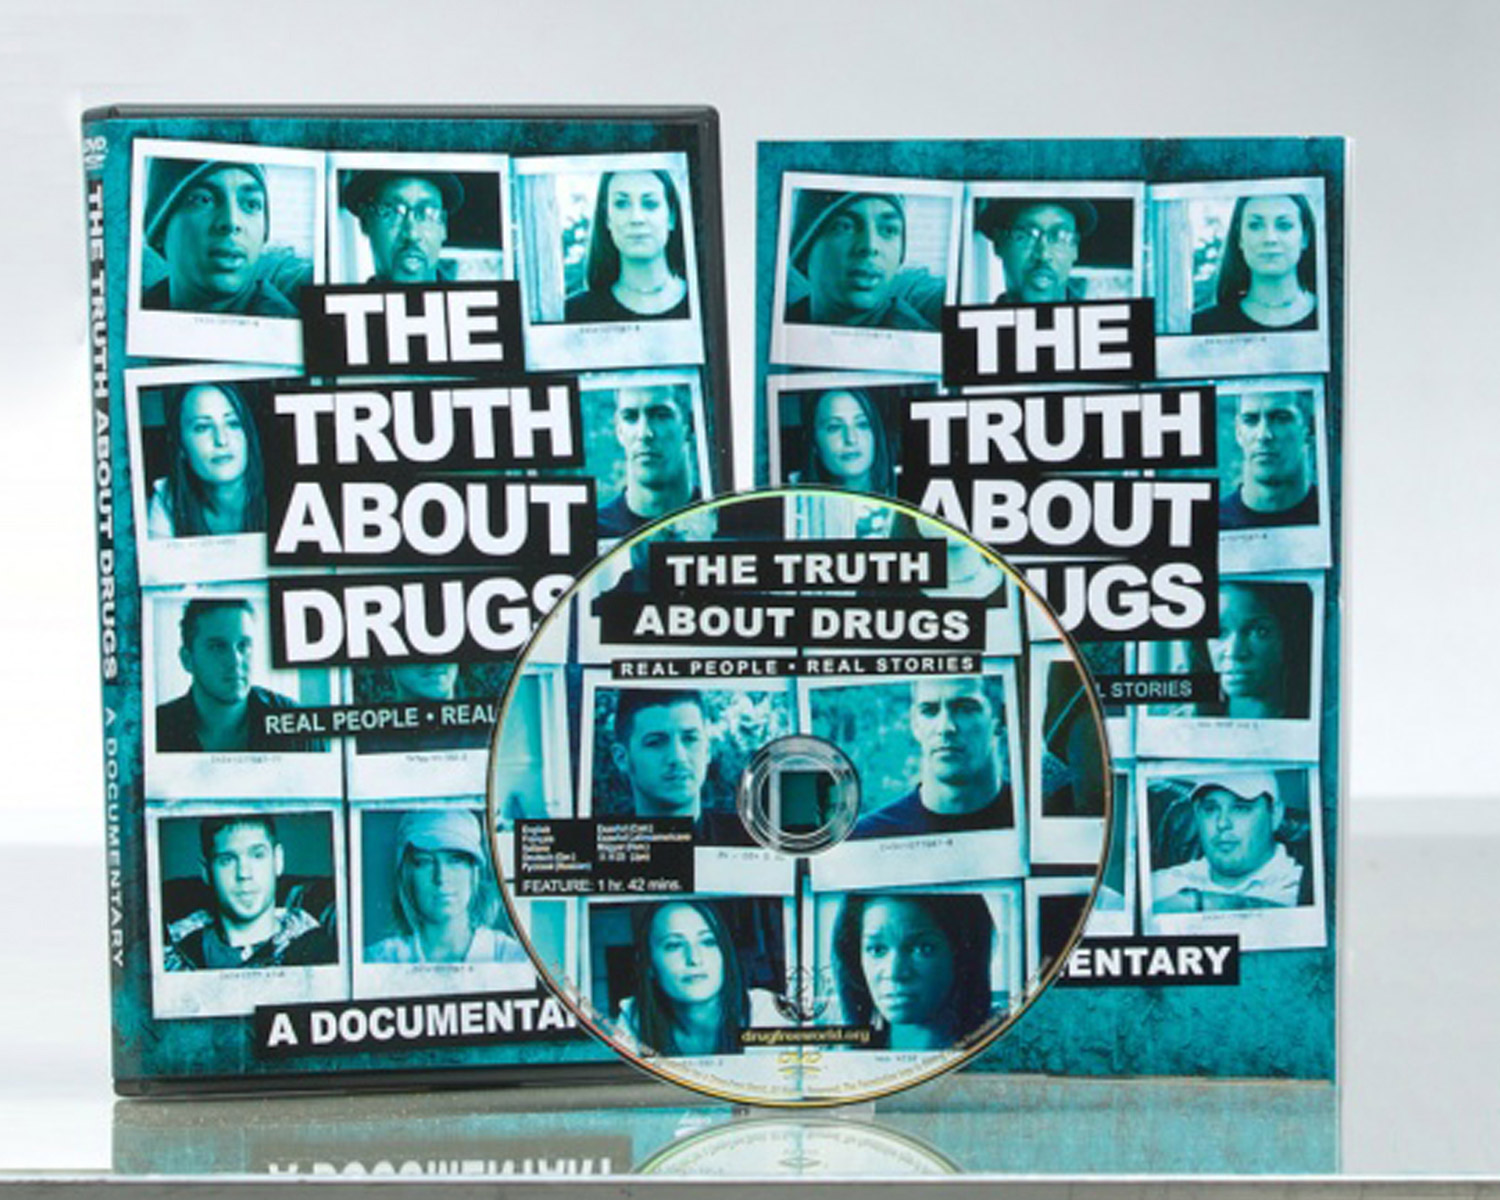 Scientologists Tell Story Behind The Truth About Drugs—Real People, Real Stories Documentary